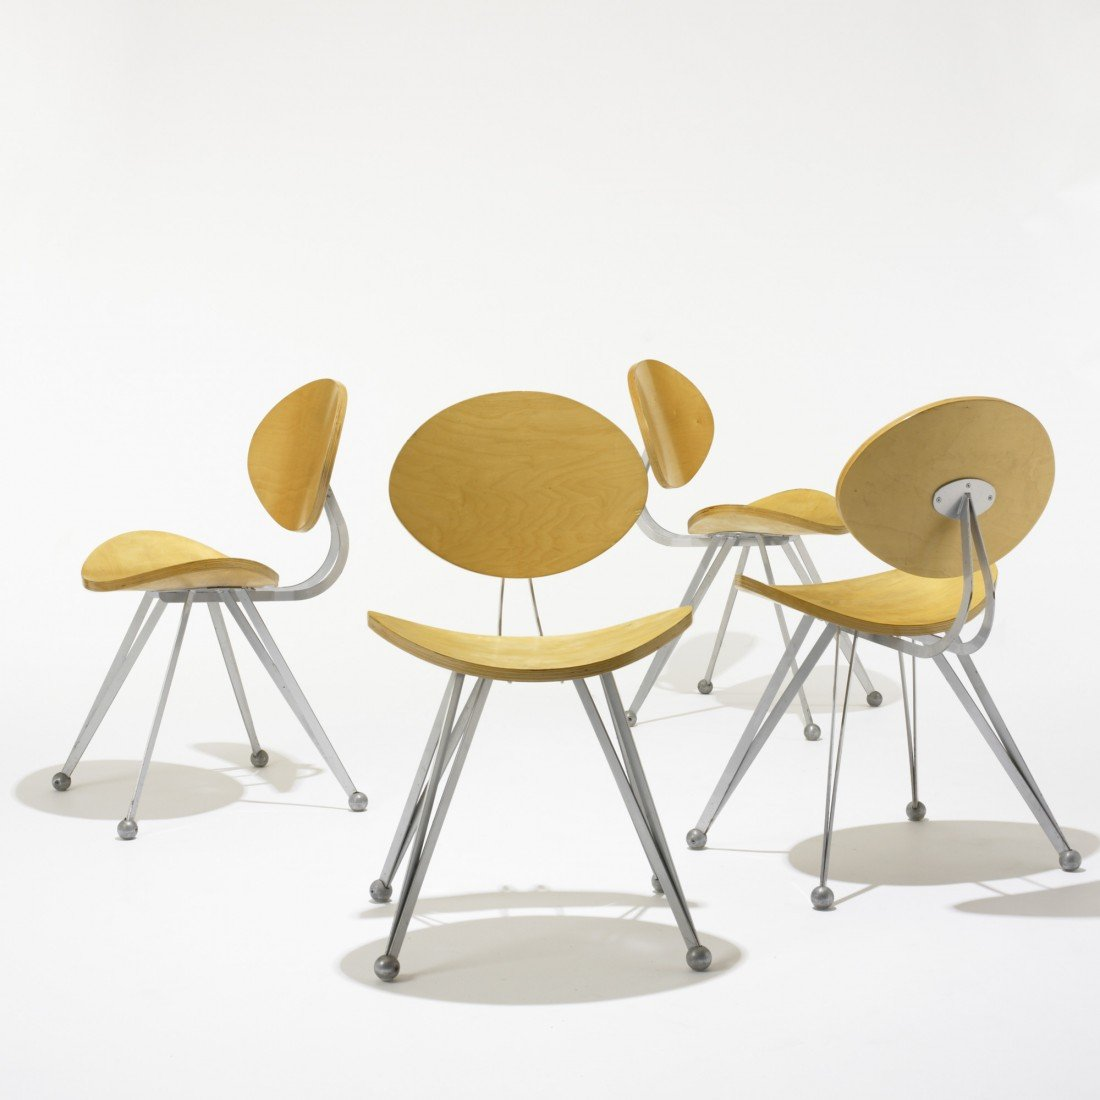 121: Ron Arad Anonimus chairs, set of four